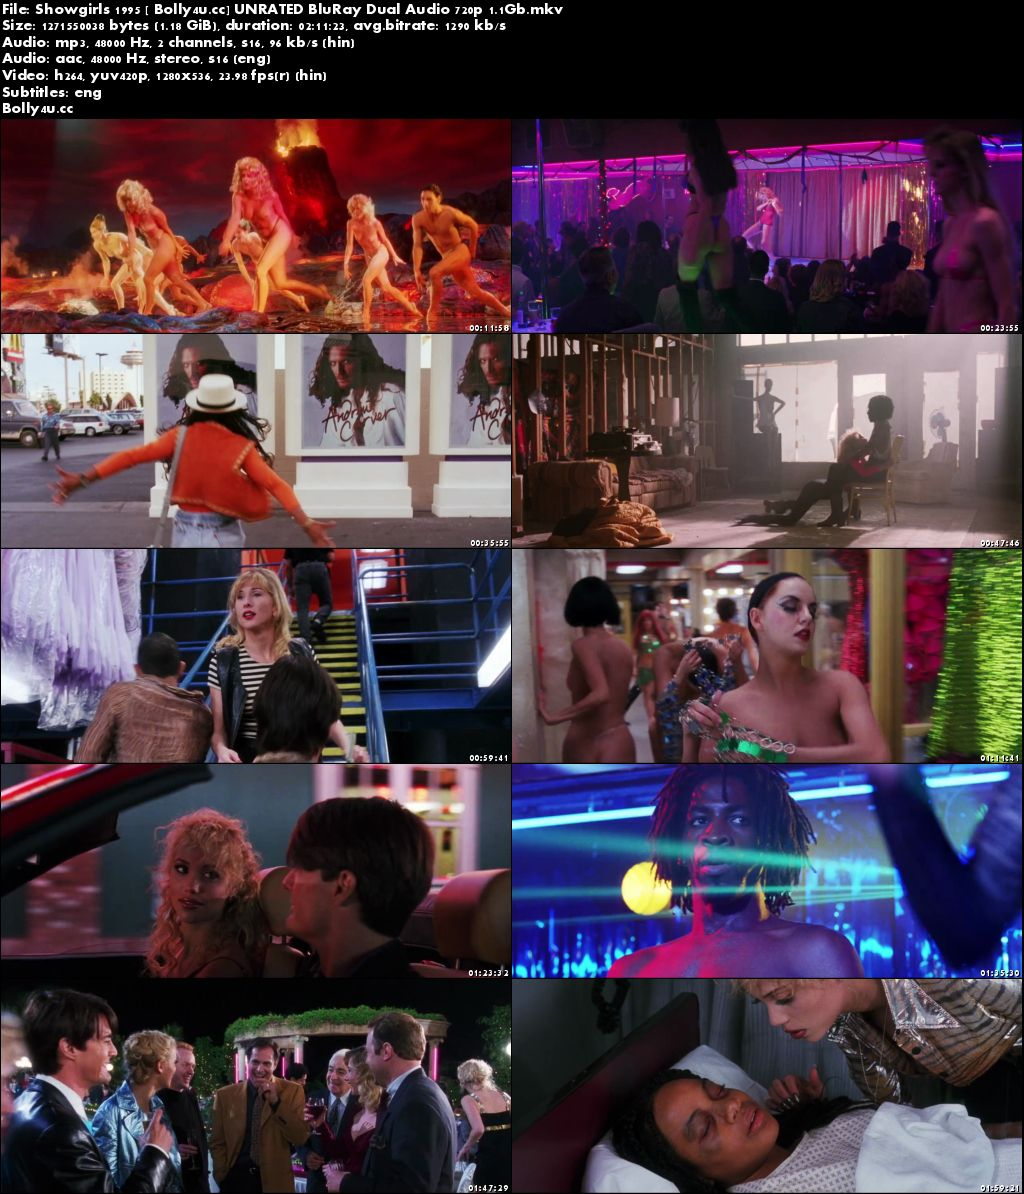 Showgirls 1995 UNRATED BluRay Hindi Dual Audio 720p Download